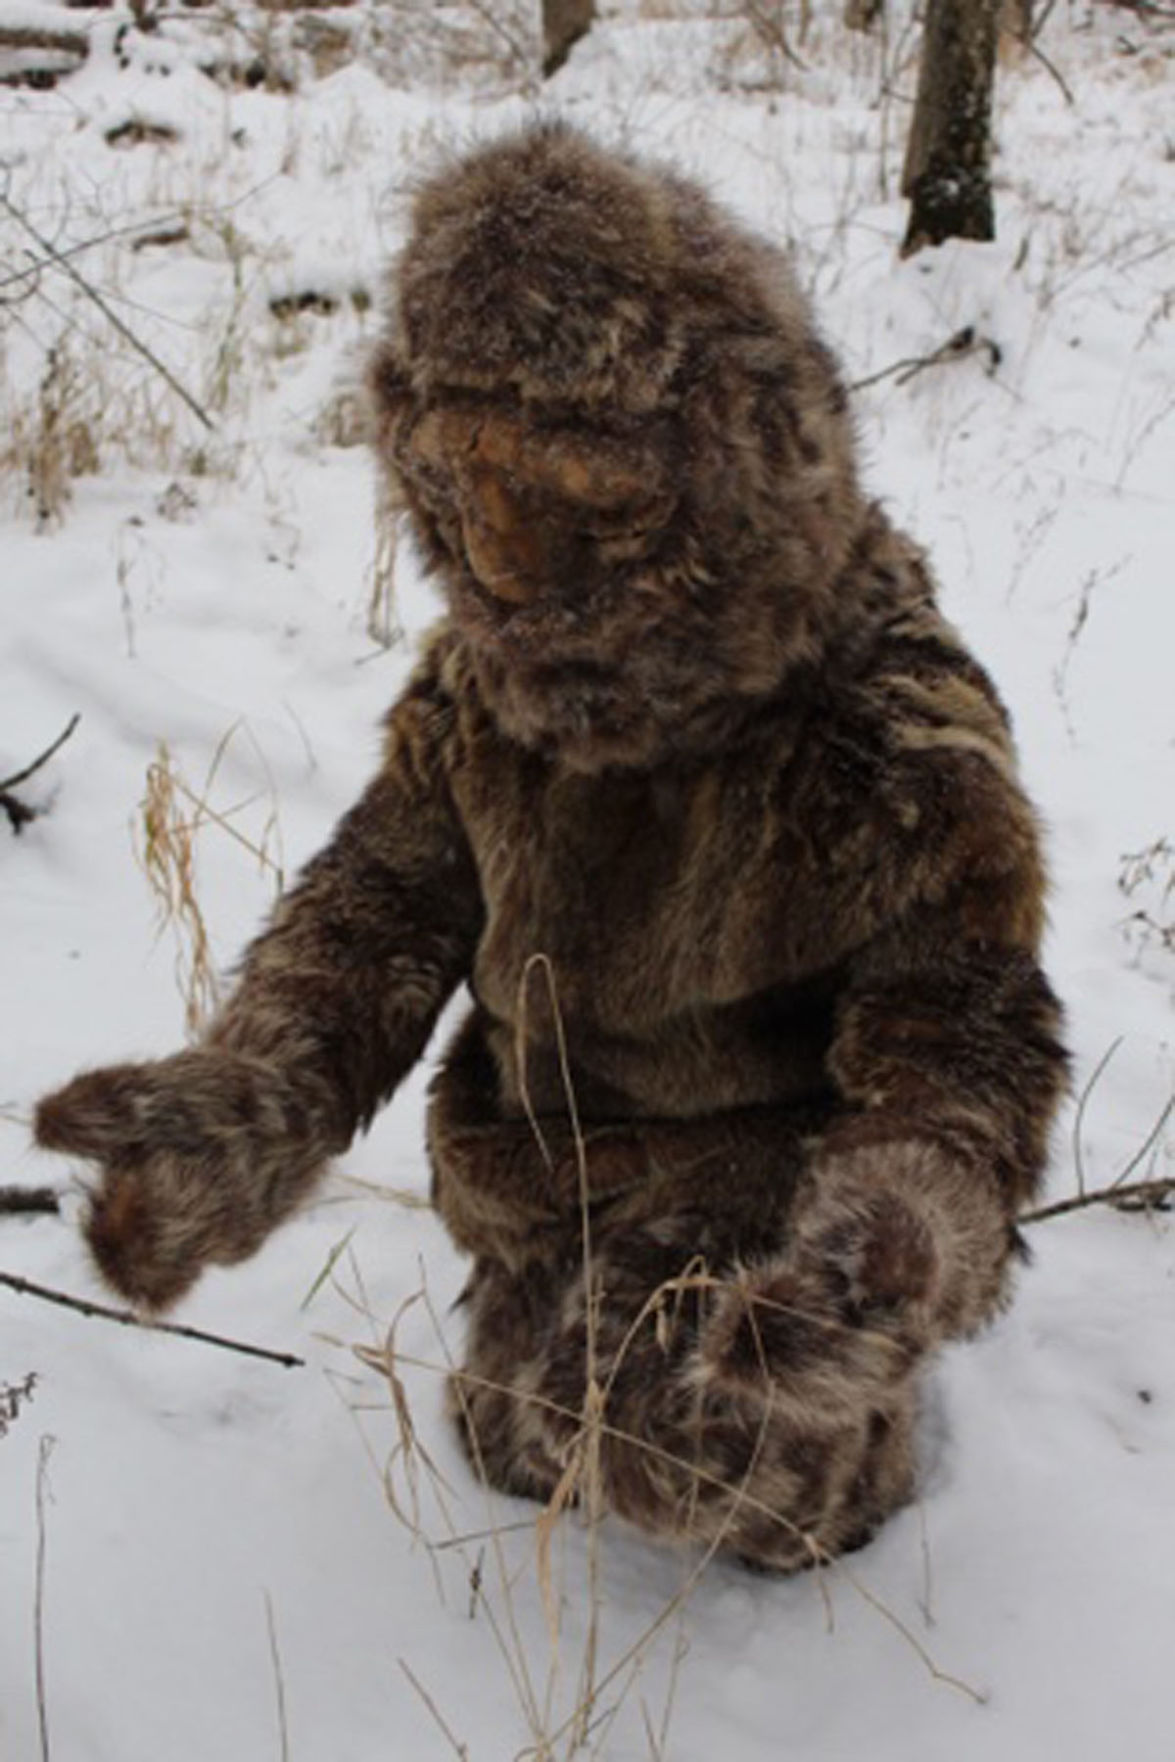 Minnesota man claims he was mistaken for Sasquatch by